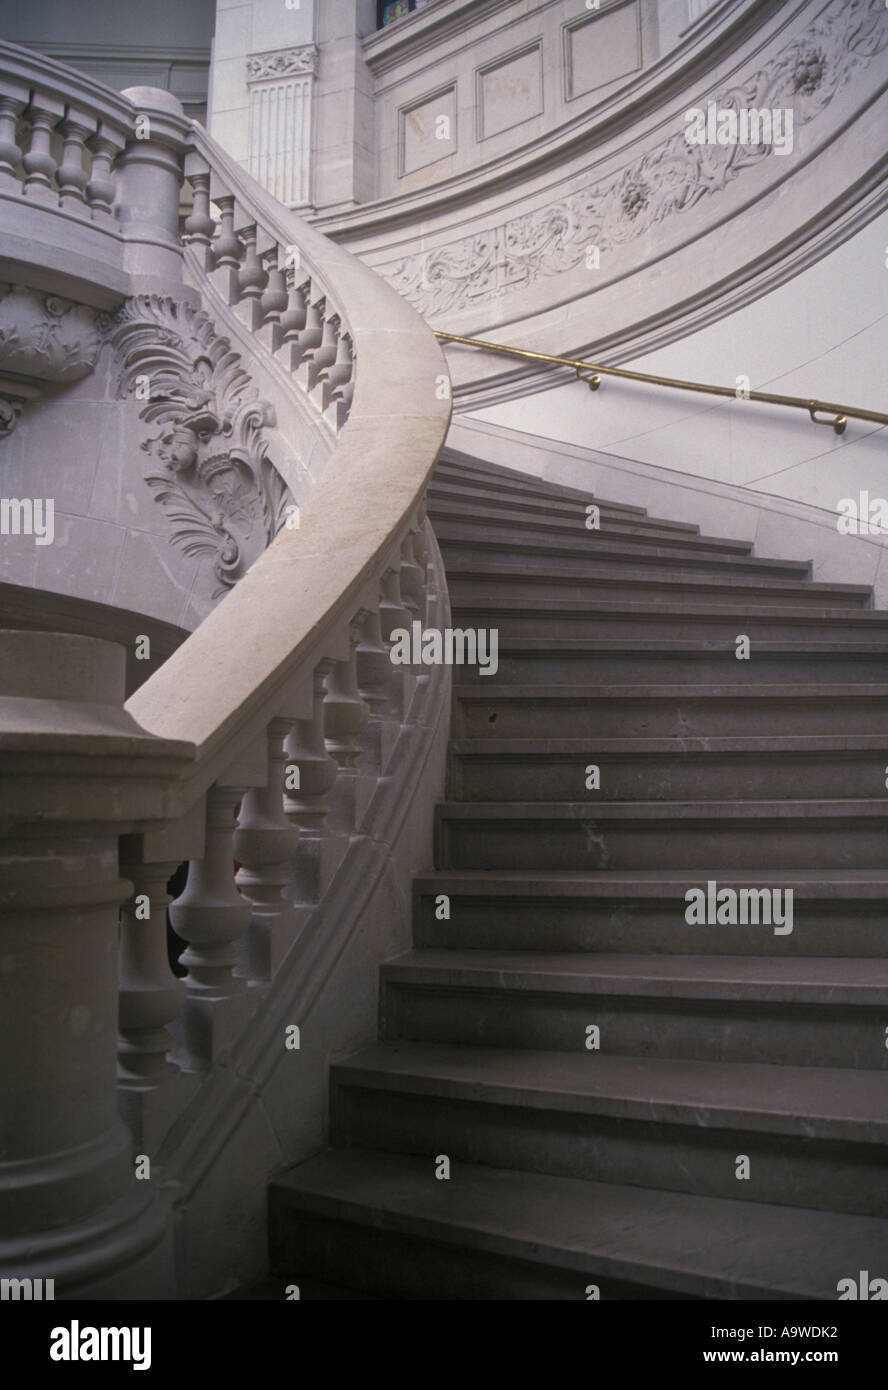 Staircase in Palais des Beaux Arts Lille Nord France Stock Photo